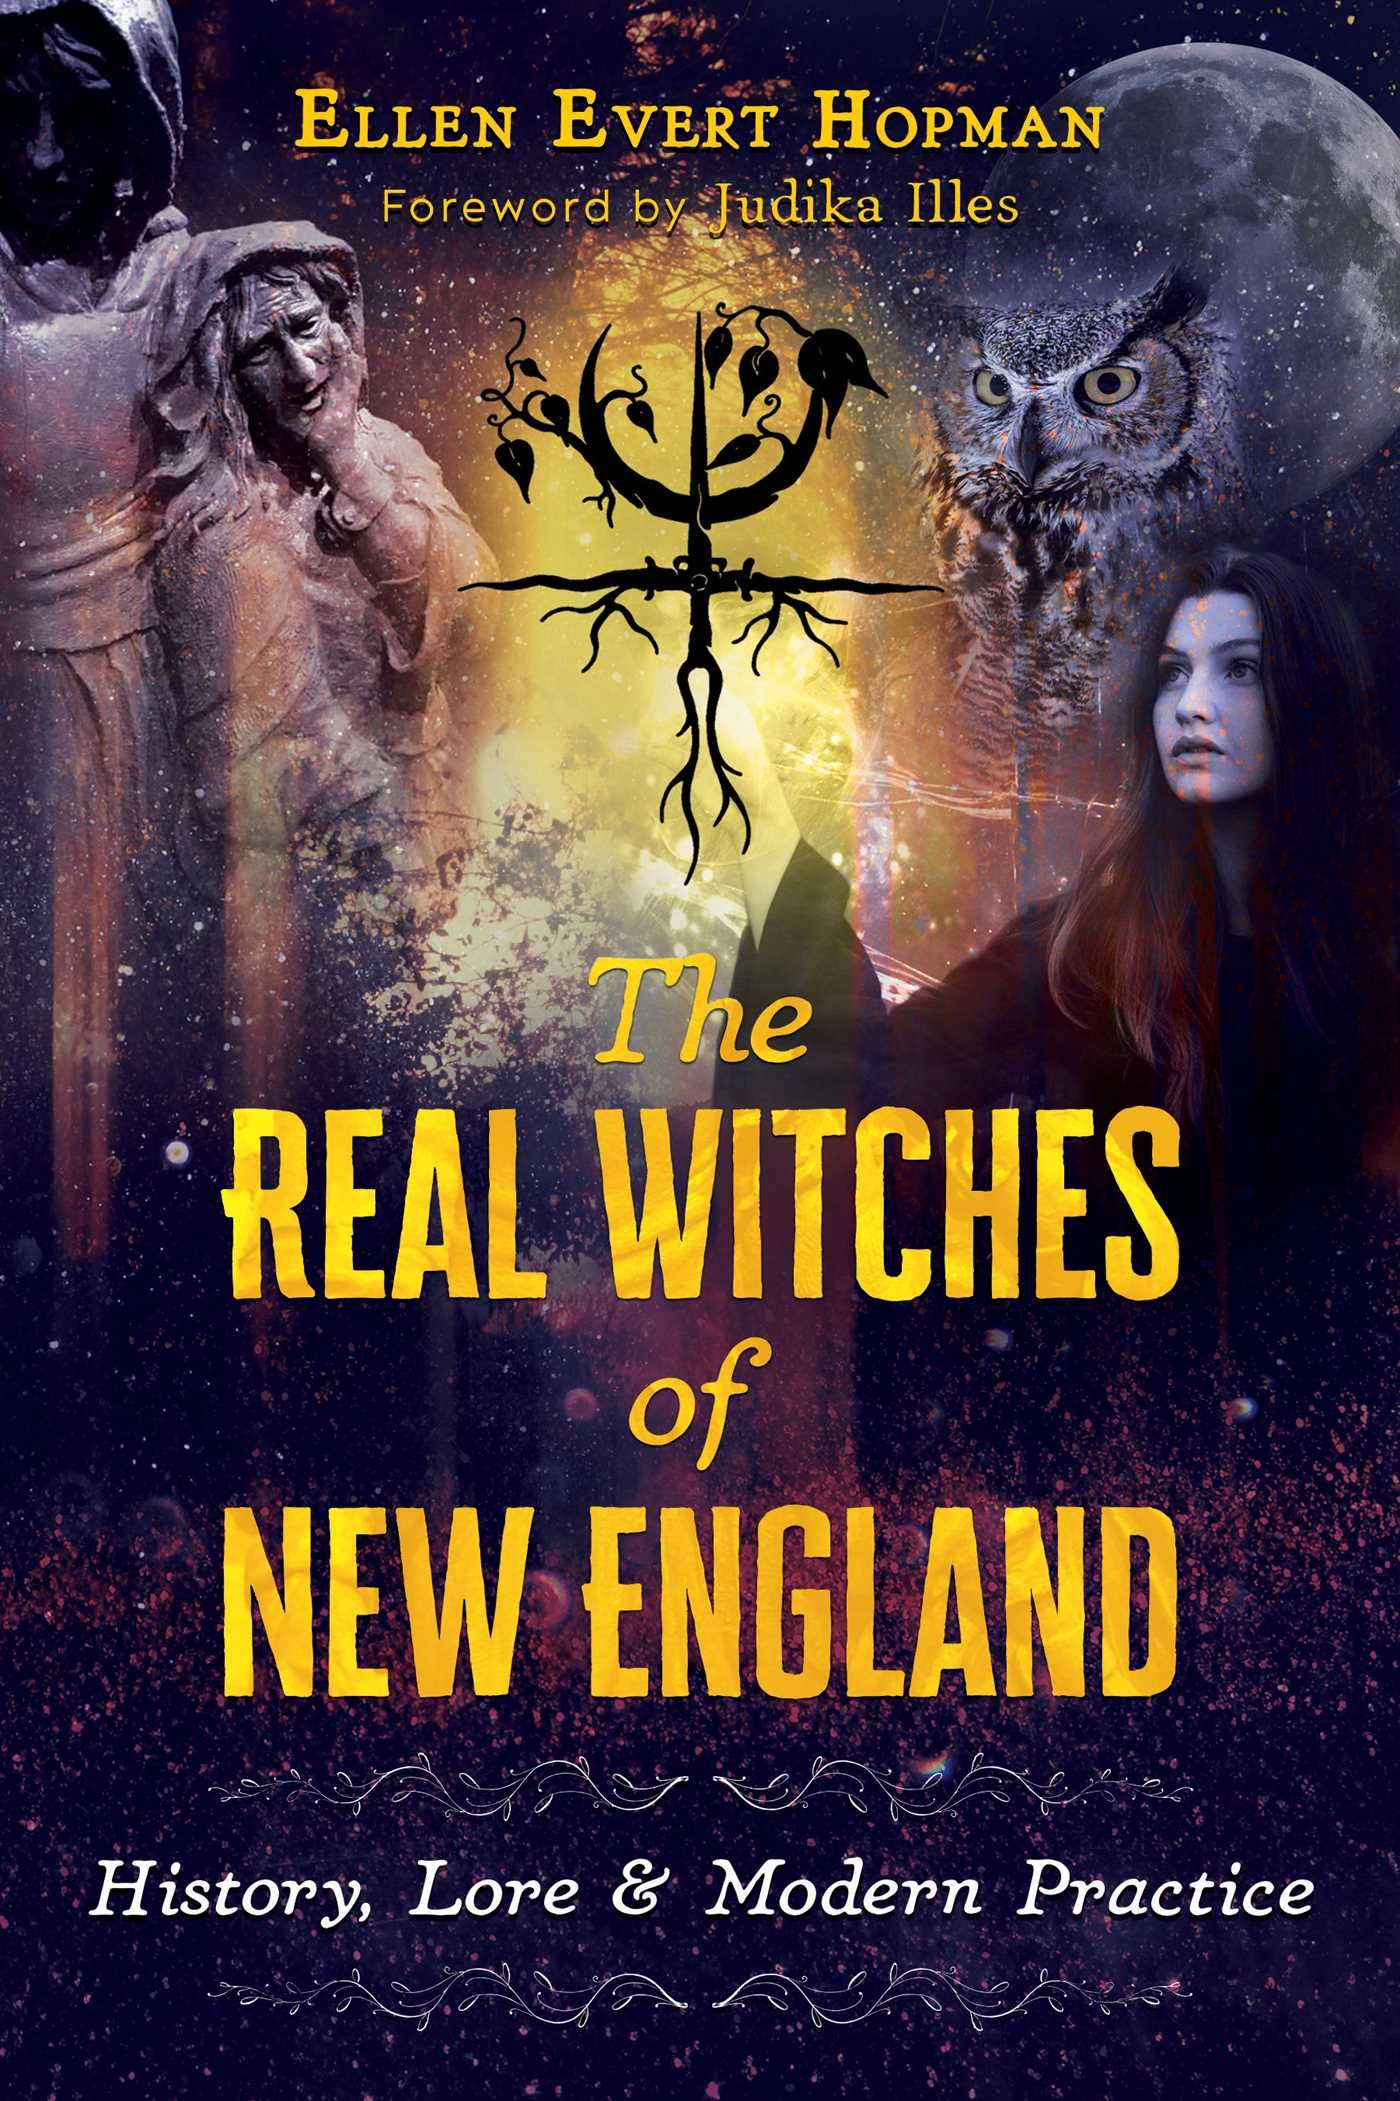 The Real Witches of New England: History, Lore, and Modern Practice PDF